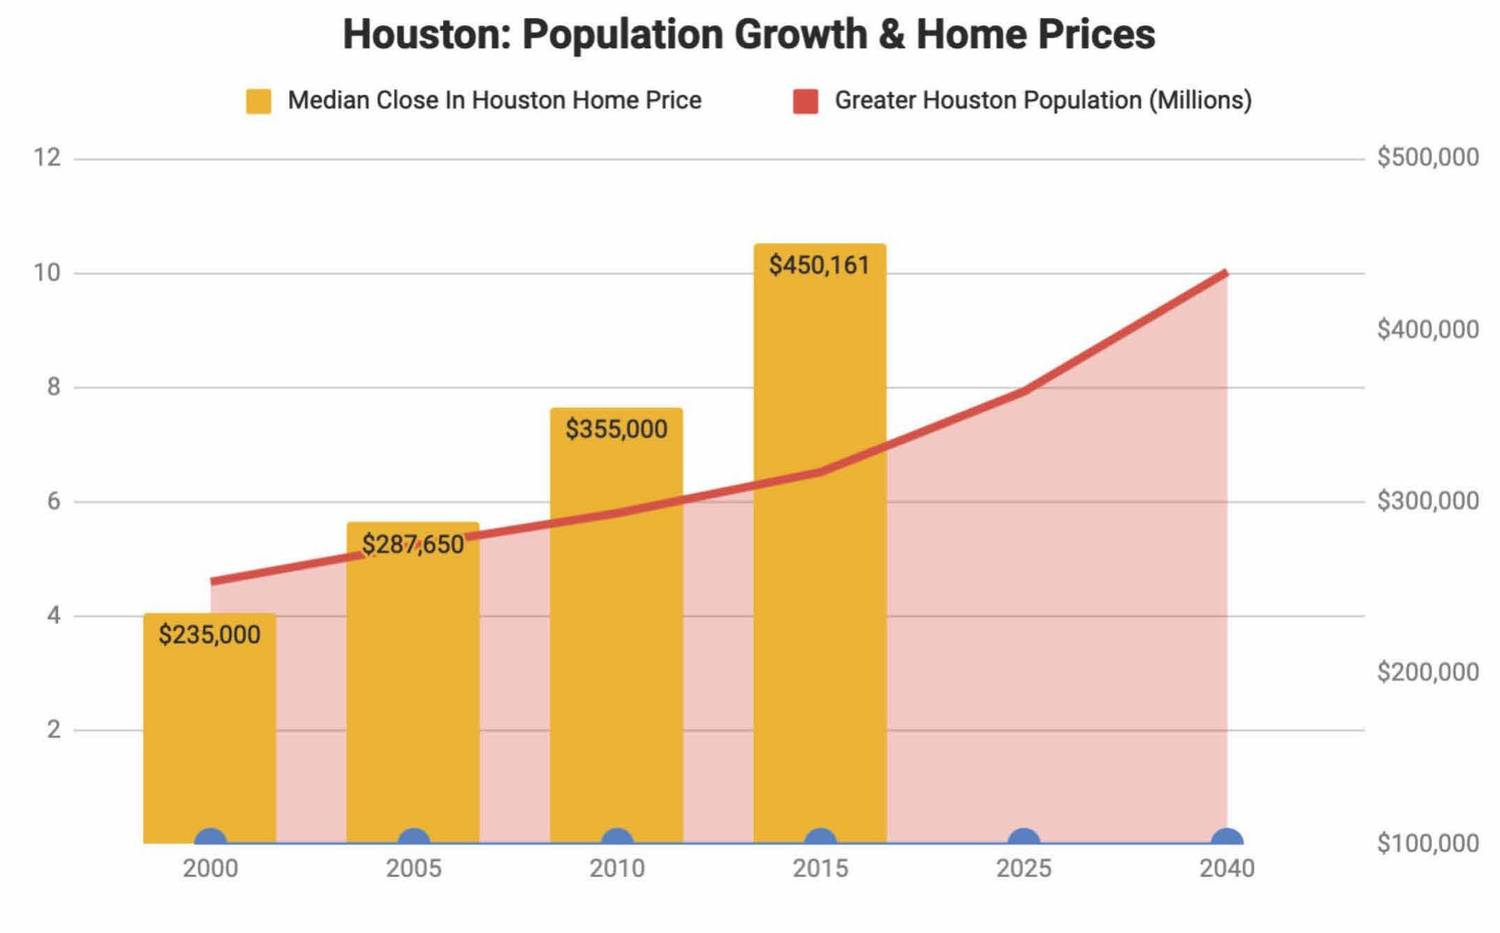 Houston Real Estate Has Been A Great Investment